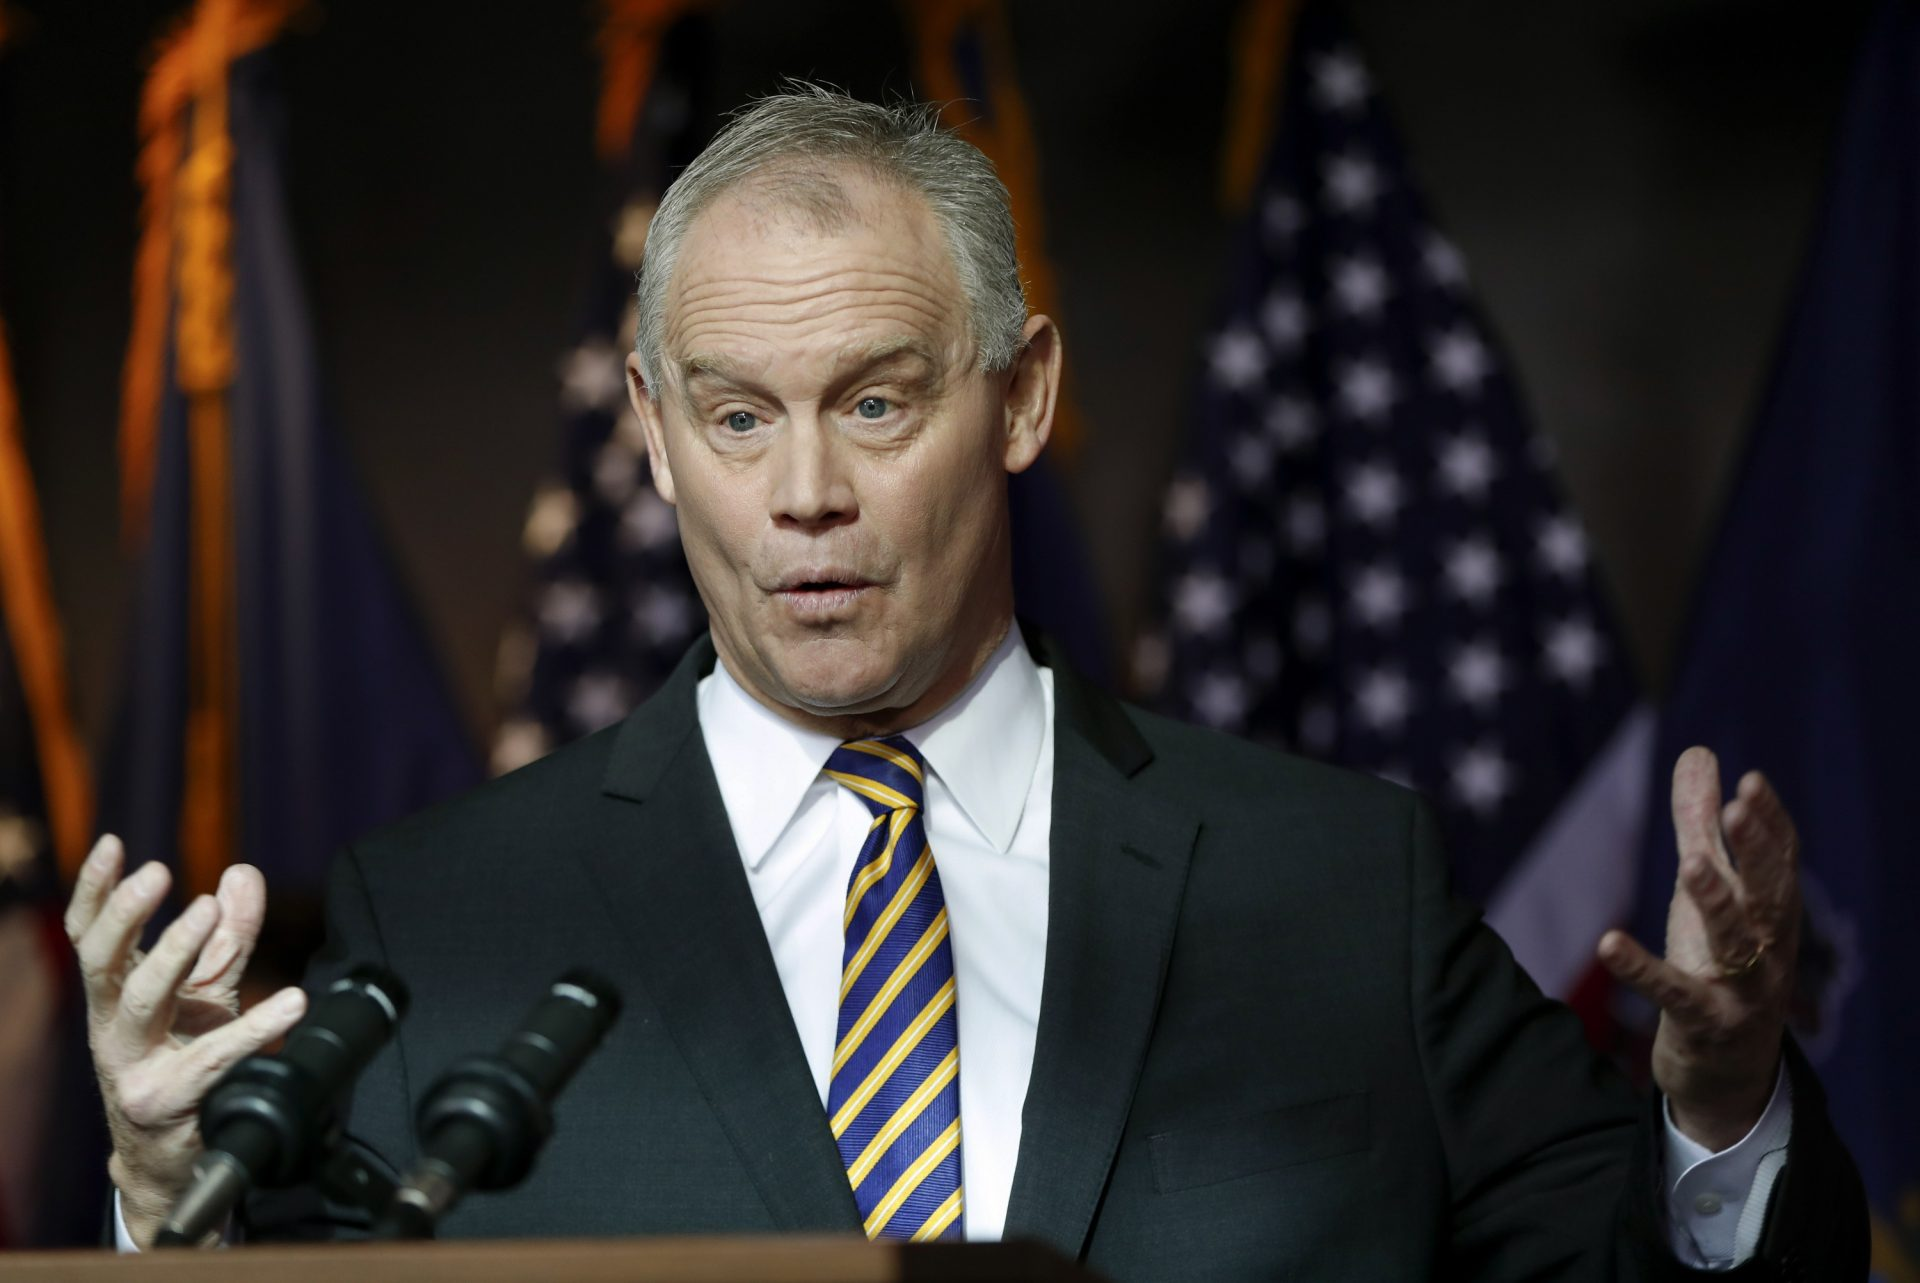 Pennsylvania Speaker of the House Mike Turzai announces at a news conference he will not run for another term as a Pennsylvania representative, Thursday, Jan. 23, 2020, in McCandless.